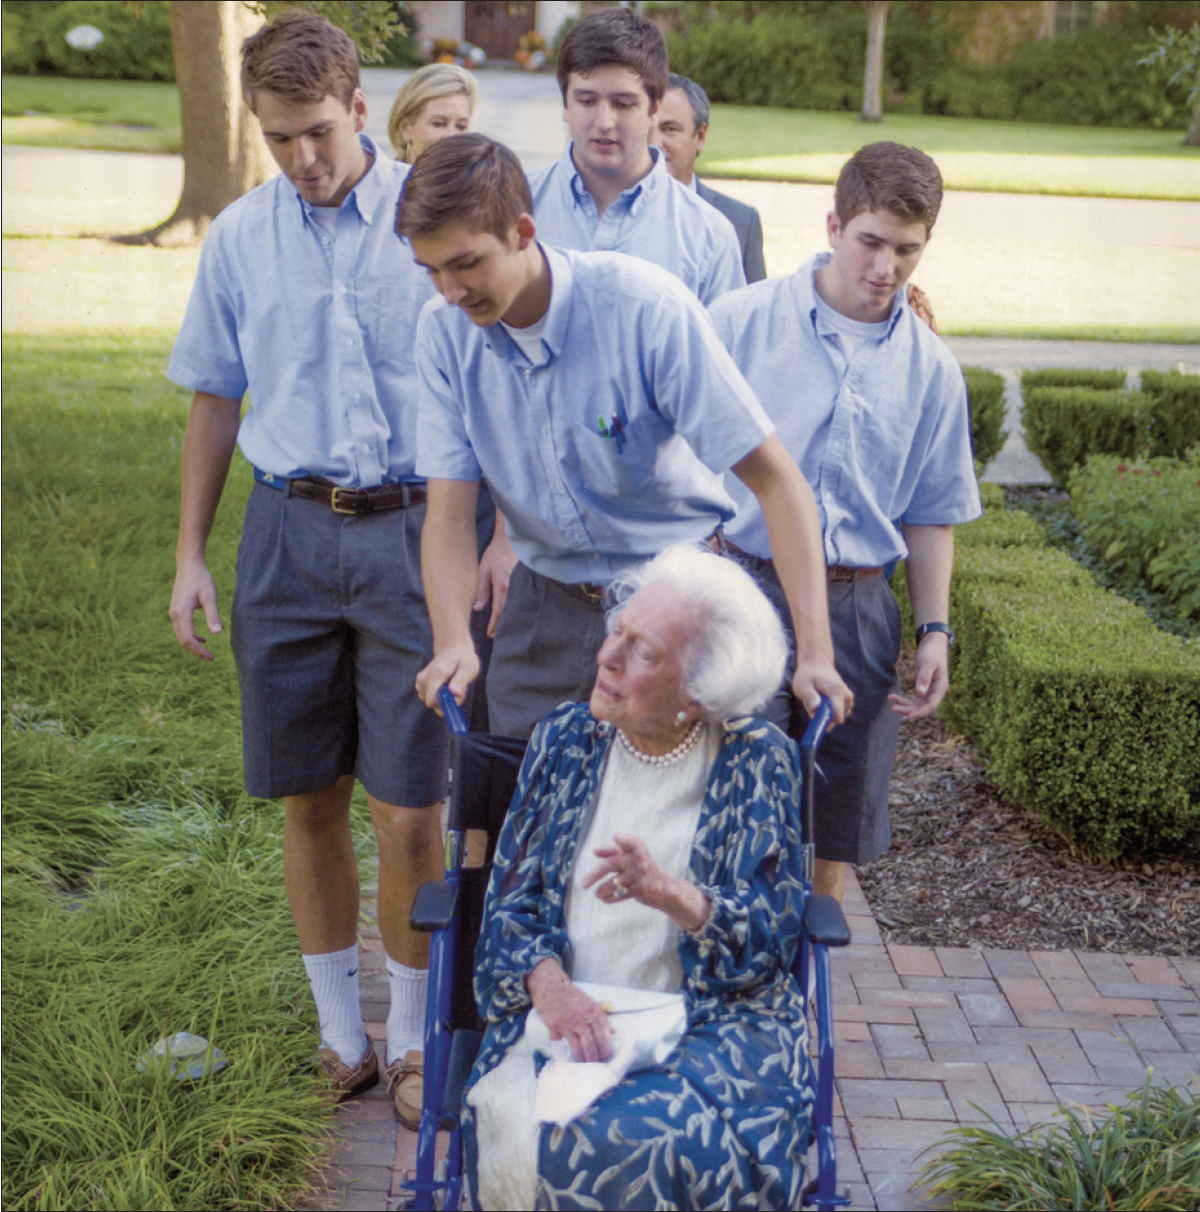 Margaret McDermott is pushed into Headmaster David Dini's house by a group of seniors from the Class of 2015. This photo, which hangs in the Headmaster's office across from his desk, became my inspiration for the opening of the story.